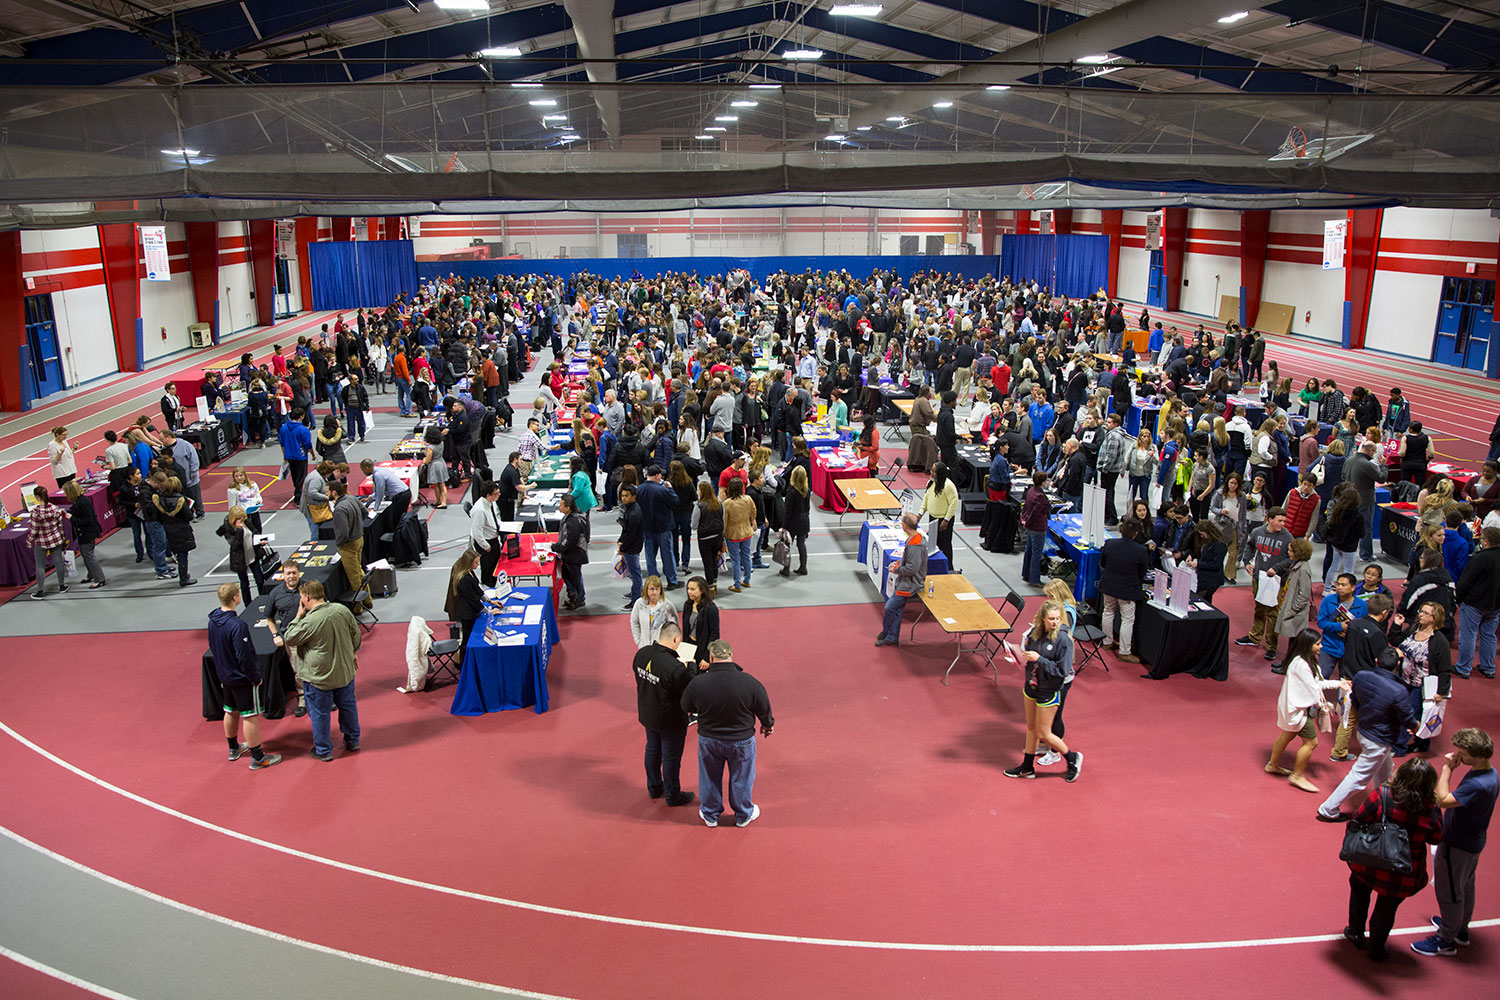 Students From 46 Different High Schools Represented At Lewis University College Fair